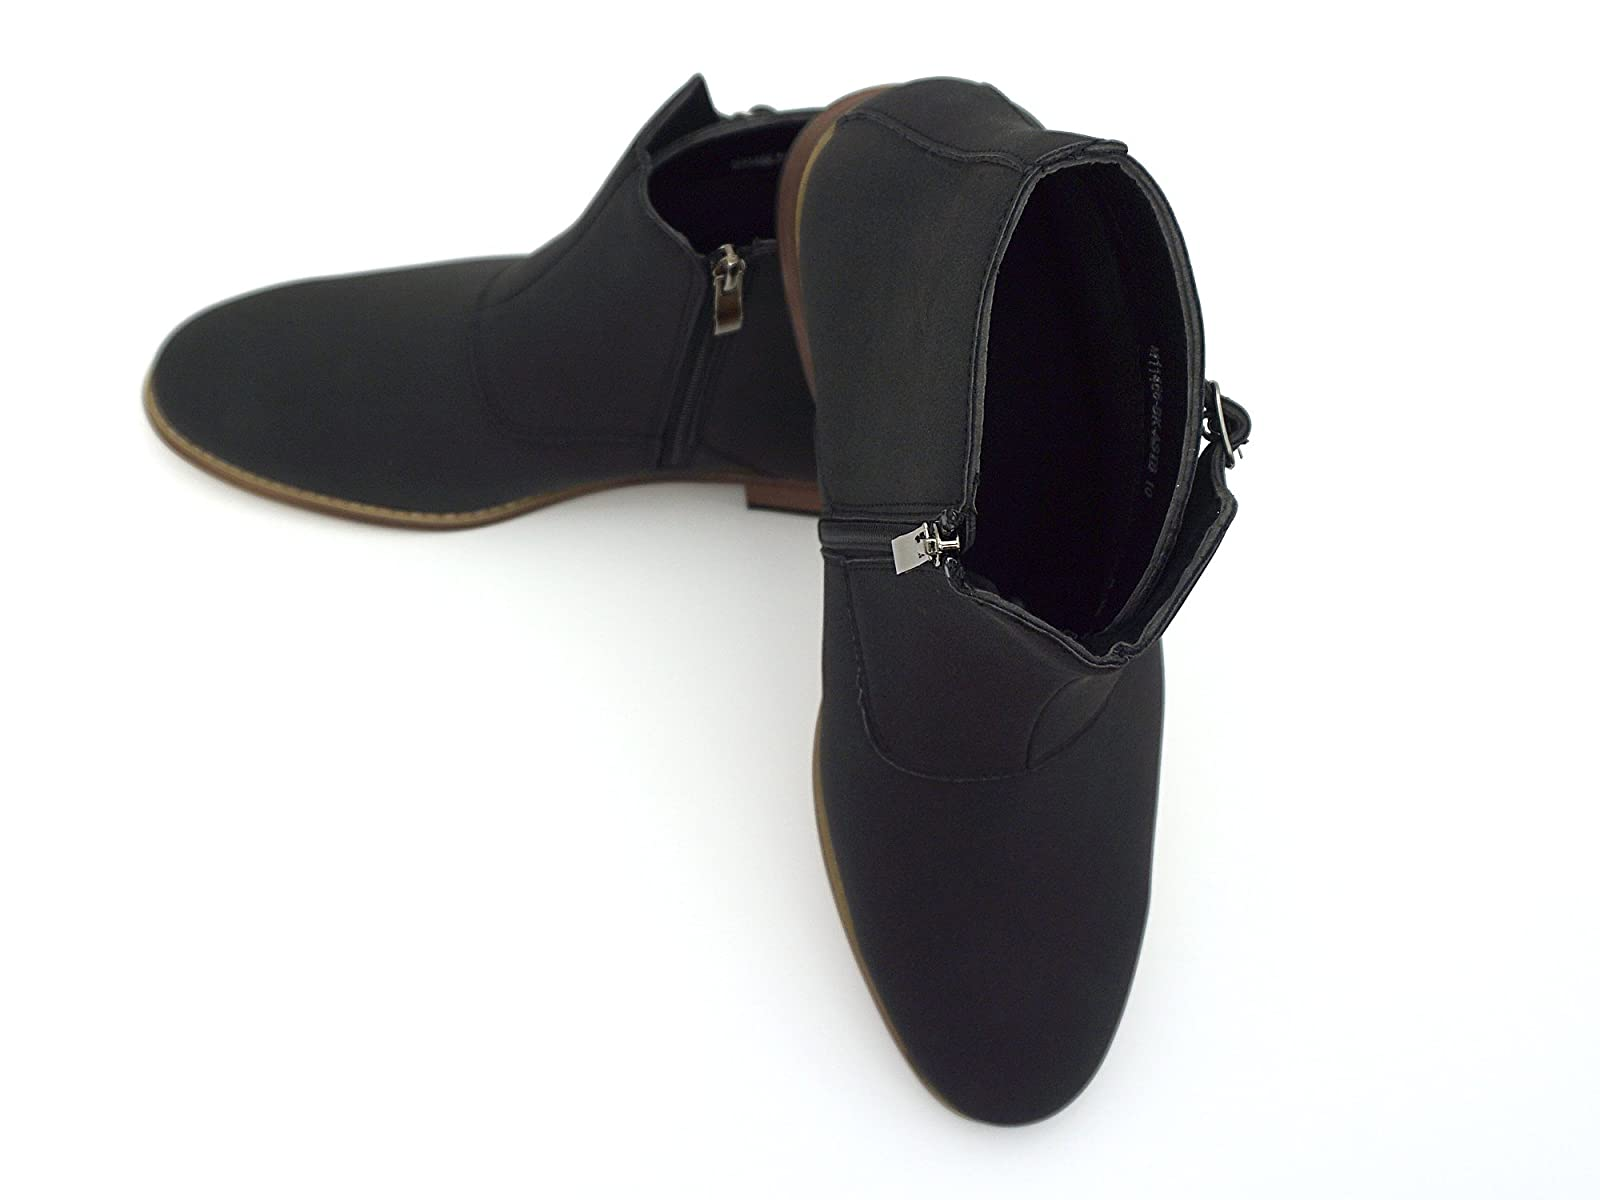 Easy Strider Chelsea Ankle Shoe Boots – - 4